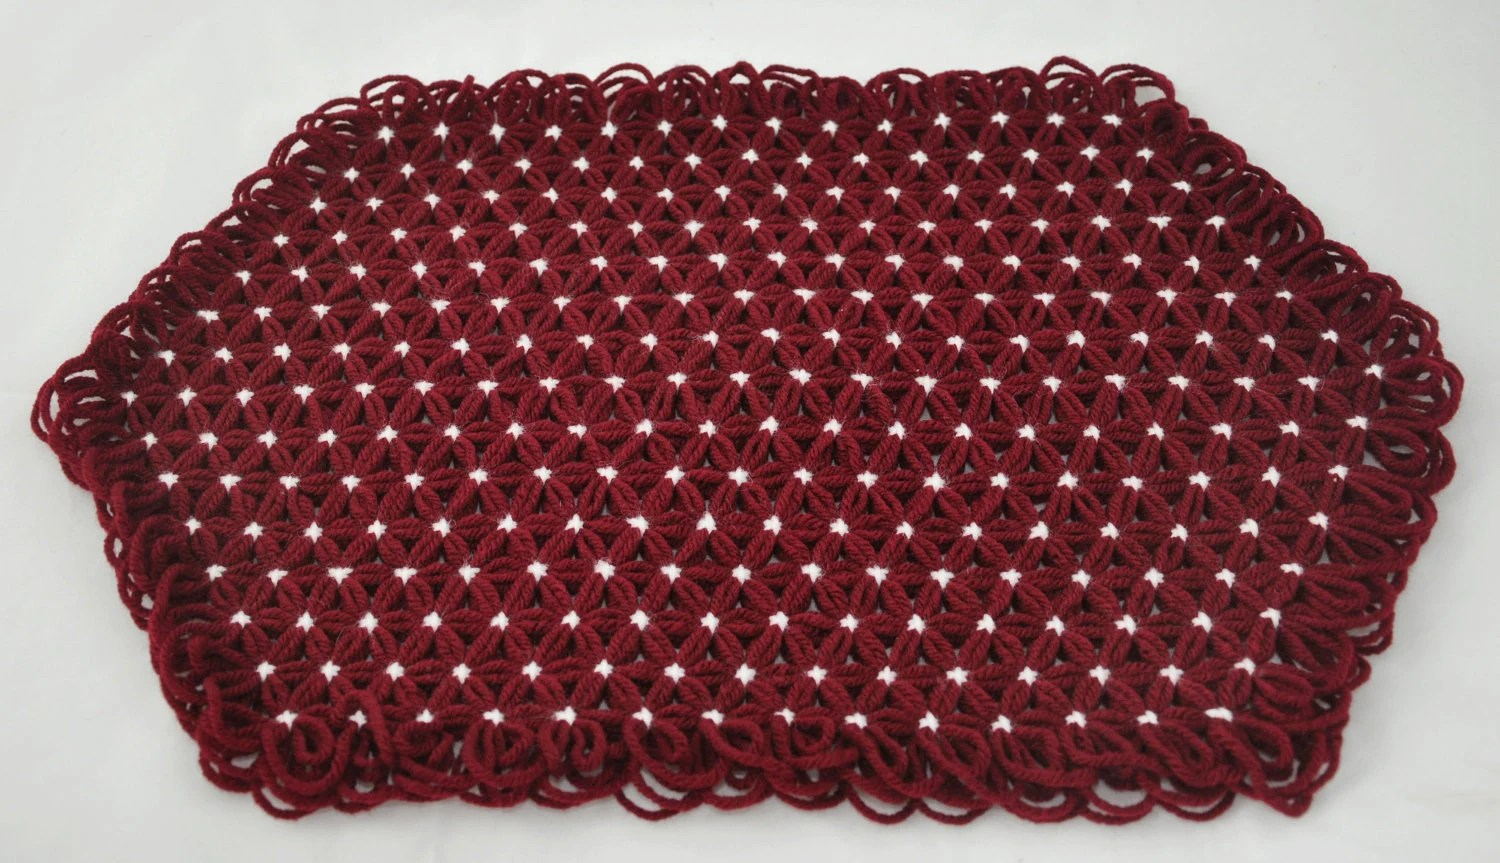 Placemats in 3 Layers of Maroon Yarn with White Ties - Set of four  - Autumn Fall Holiday Colors